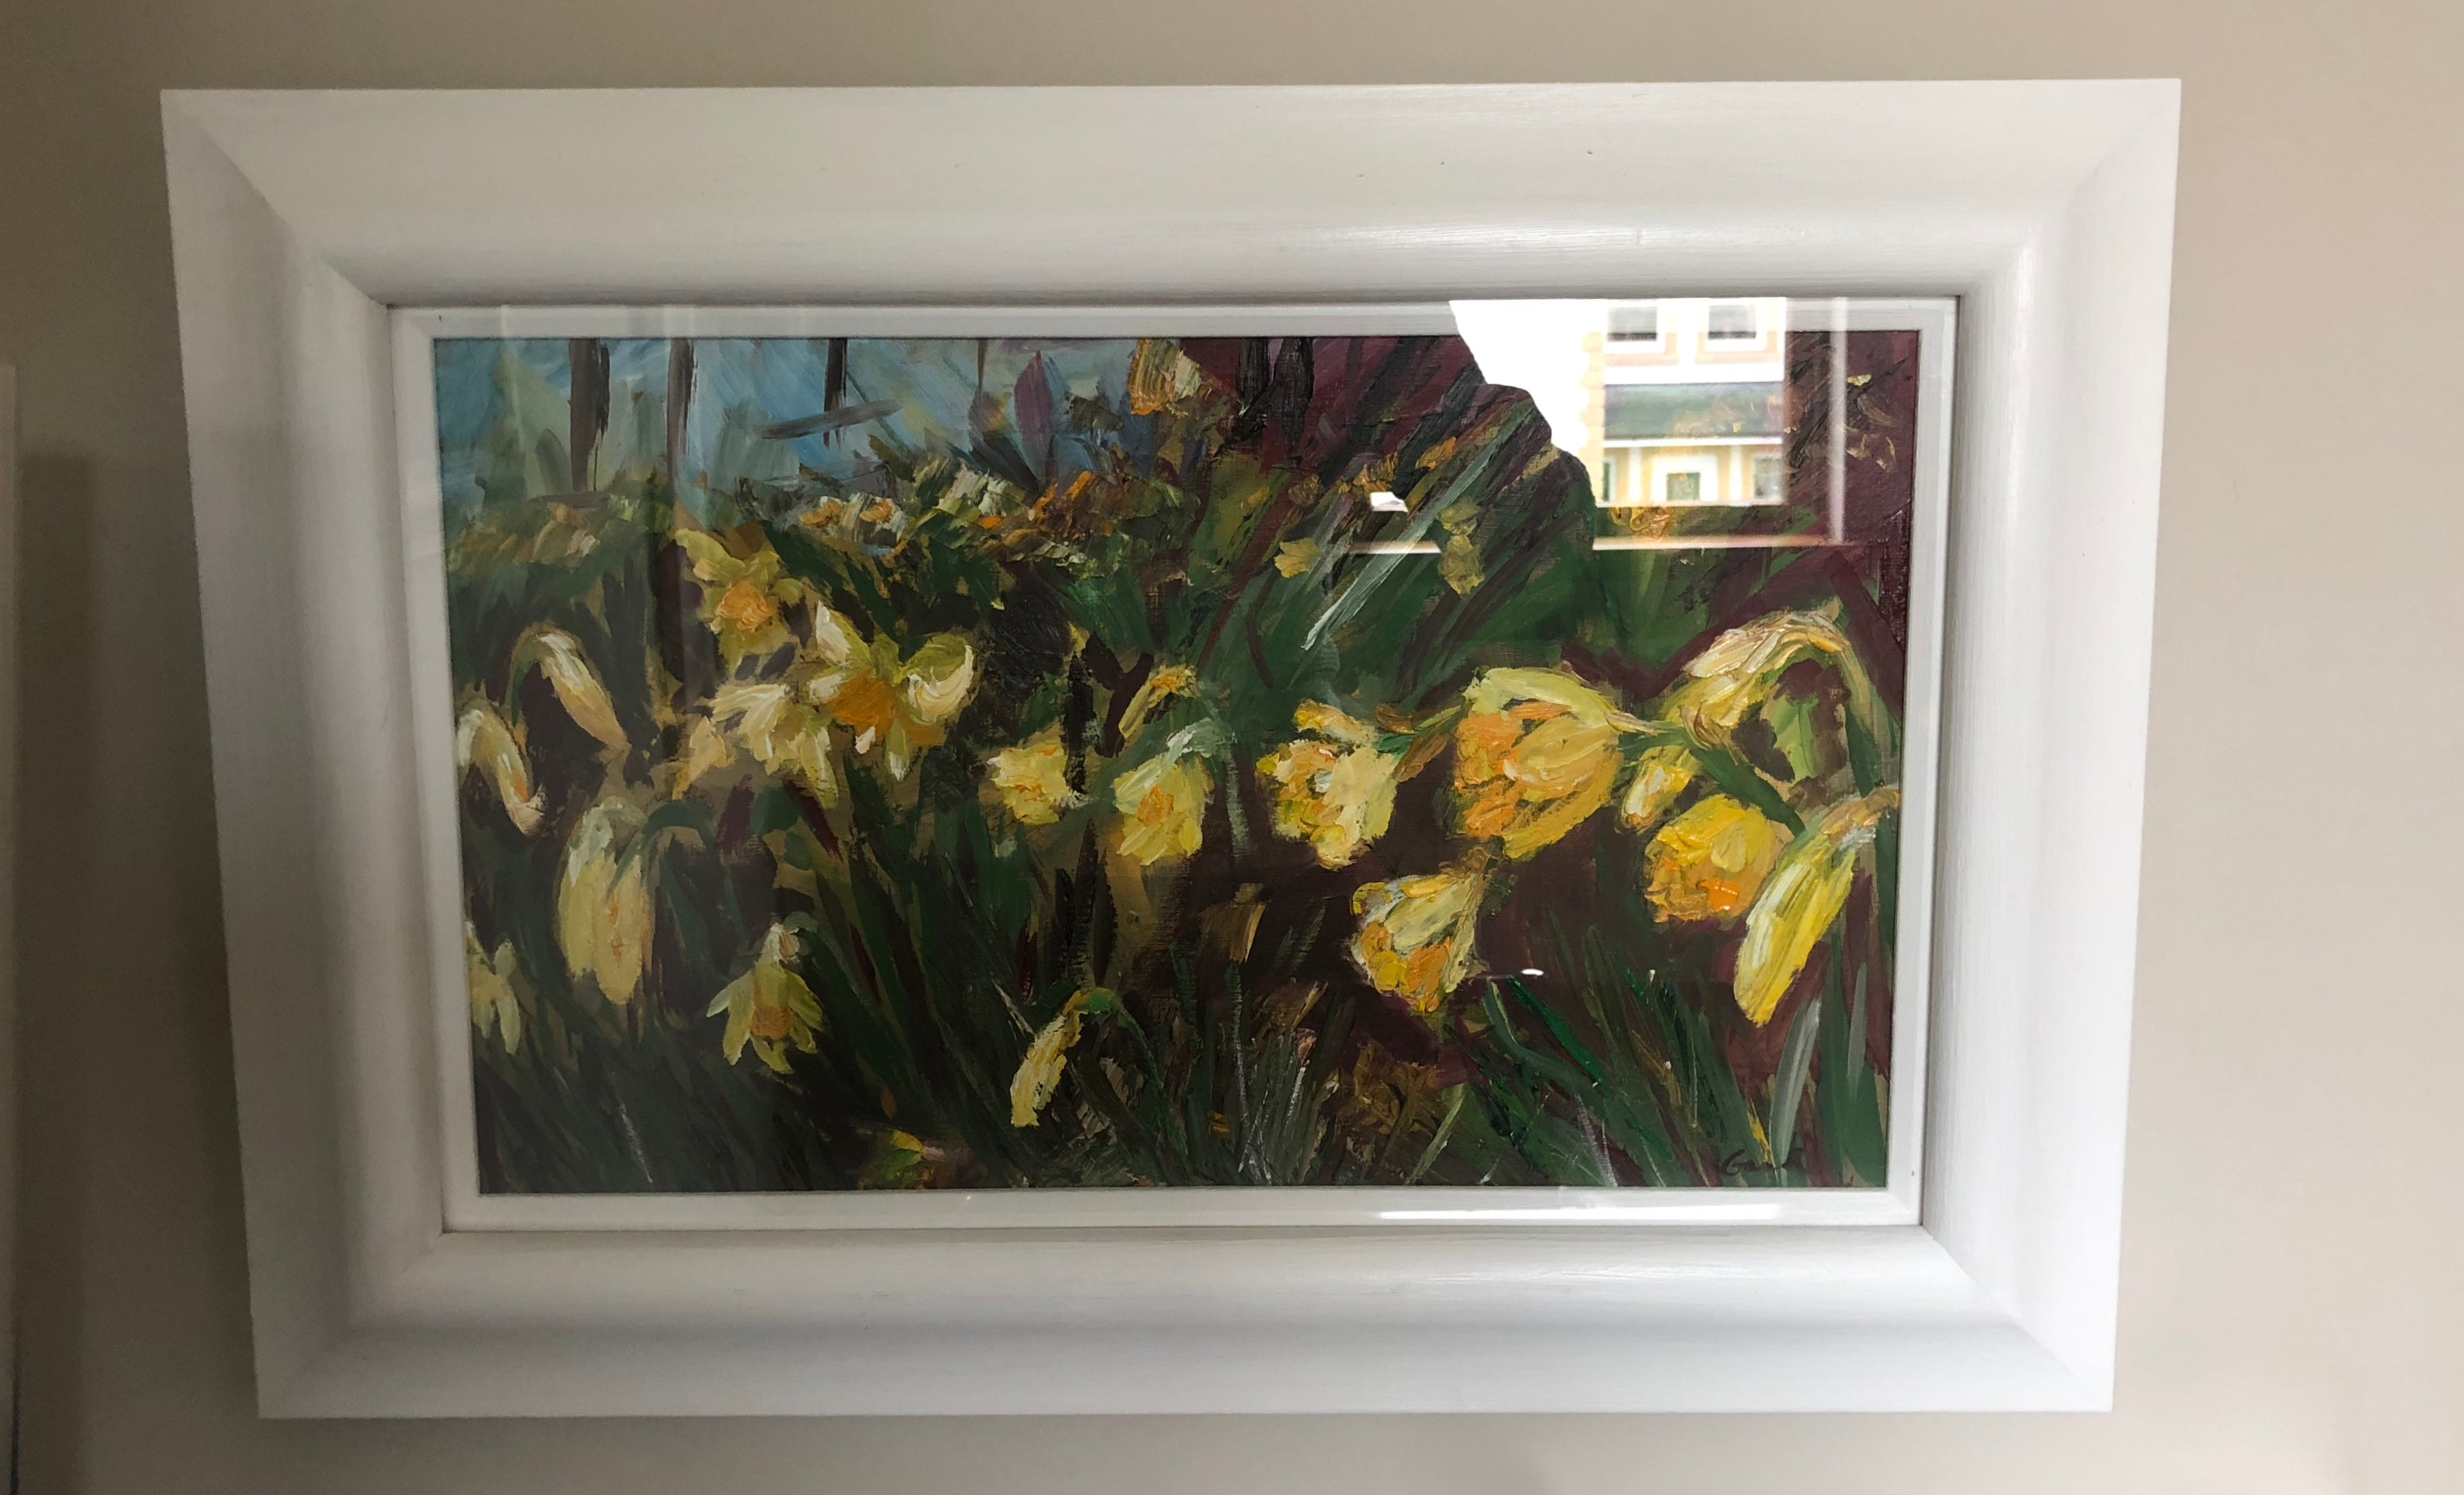 Daffodils Blowing in the Breeze